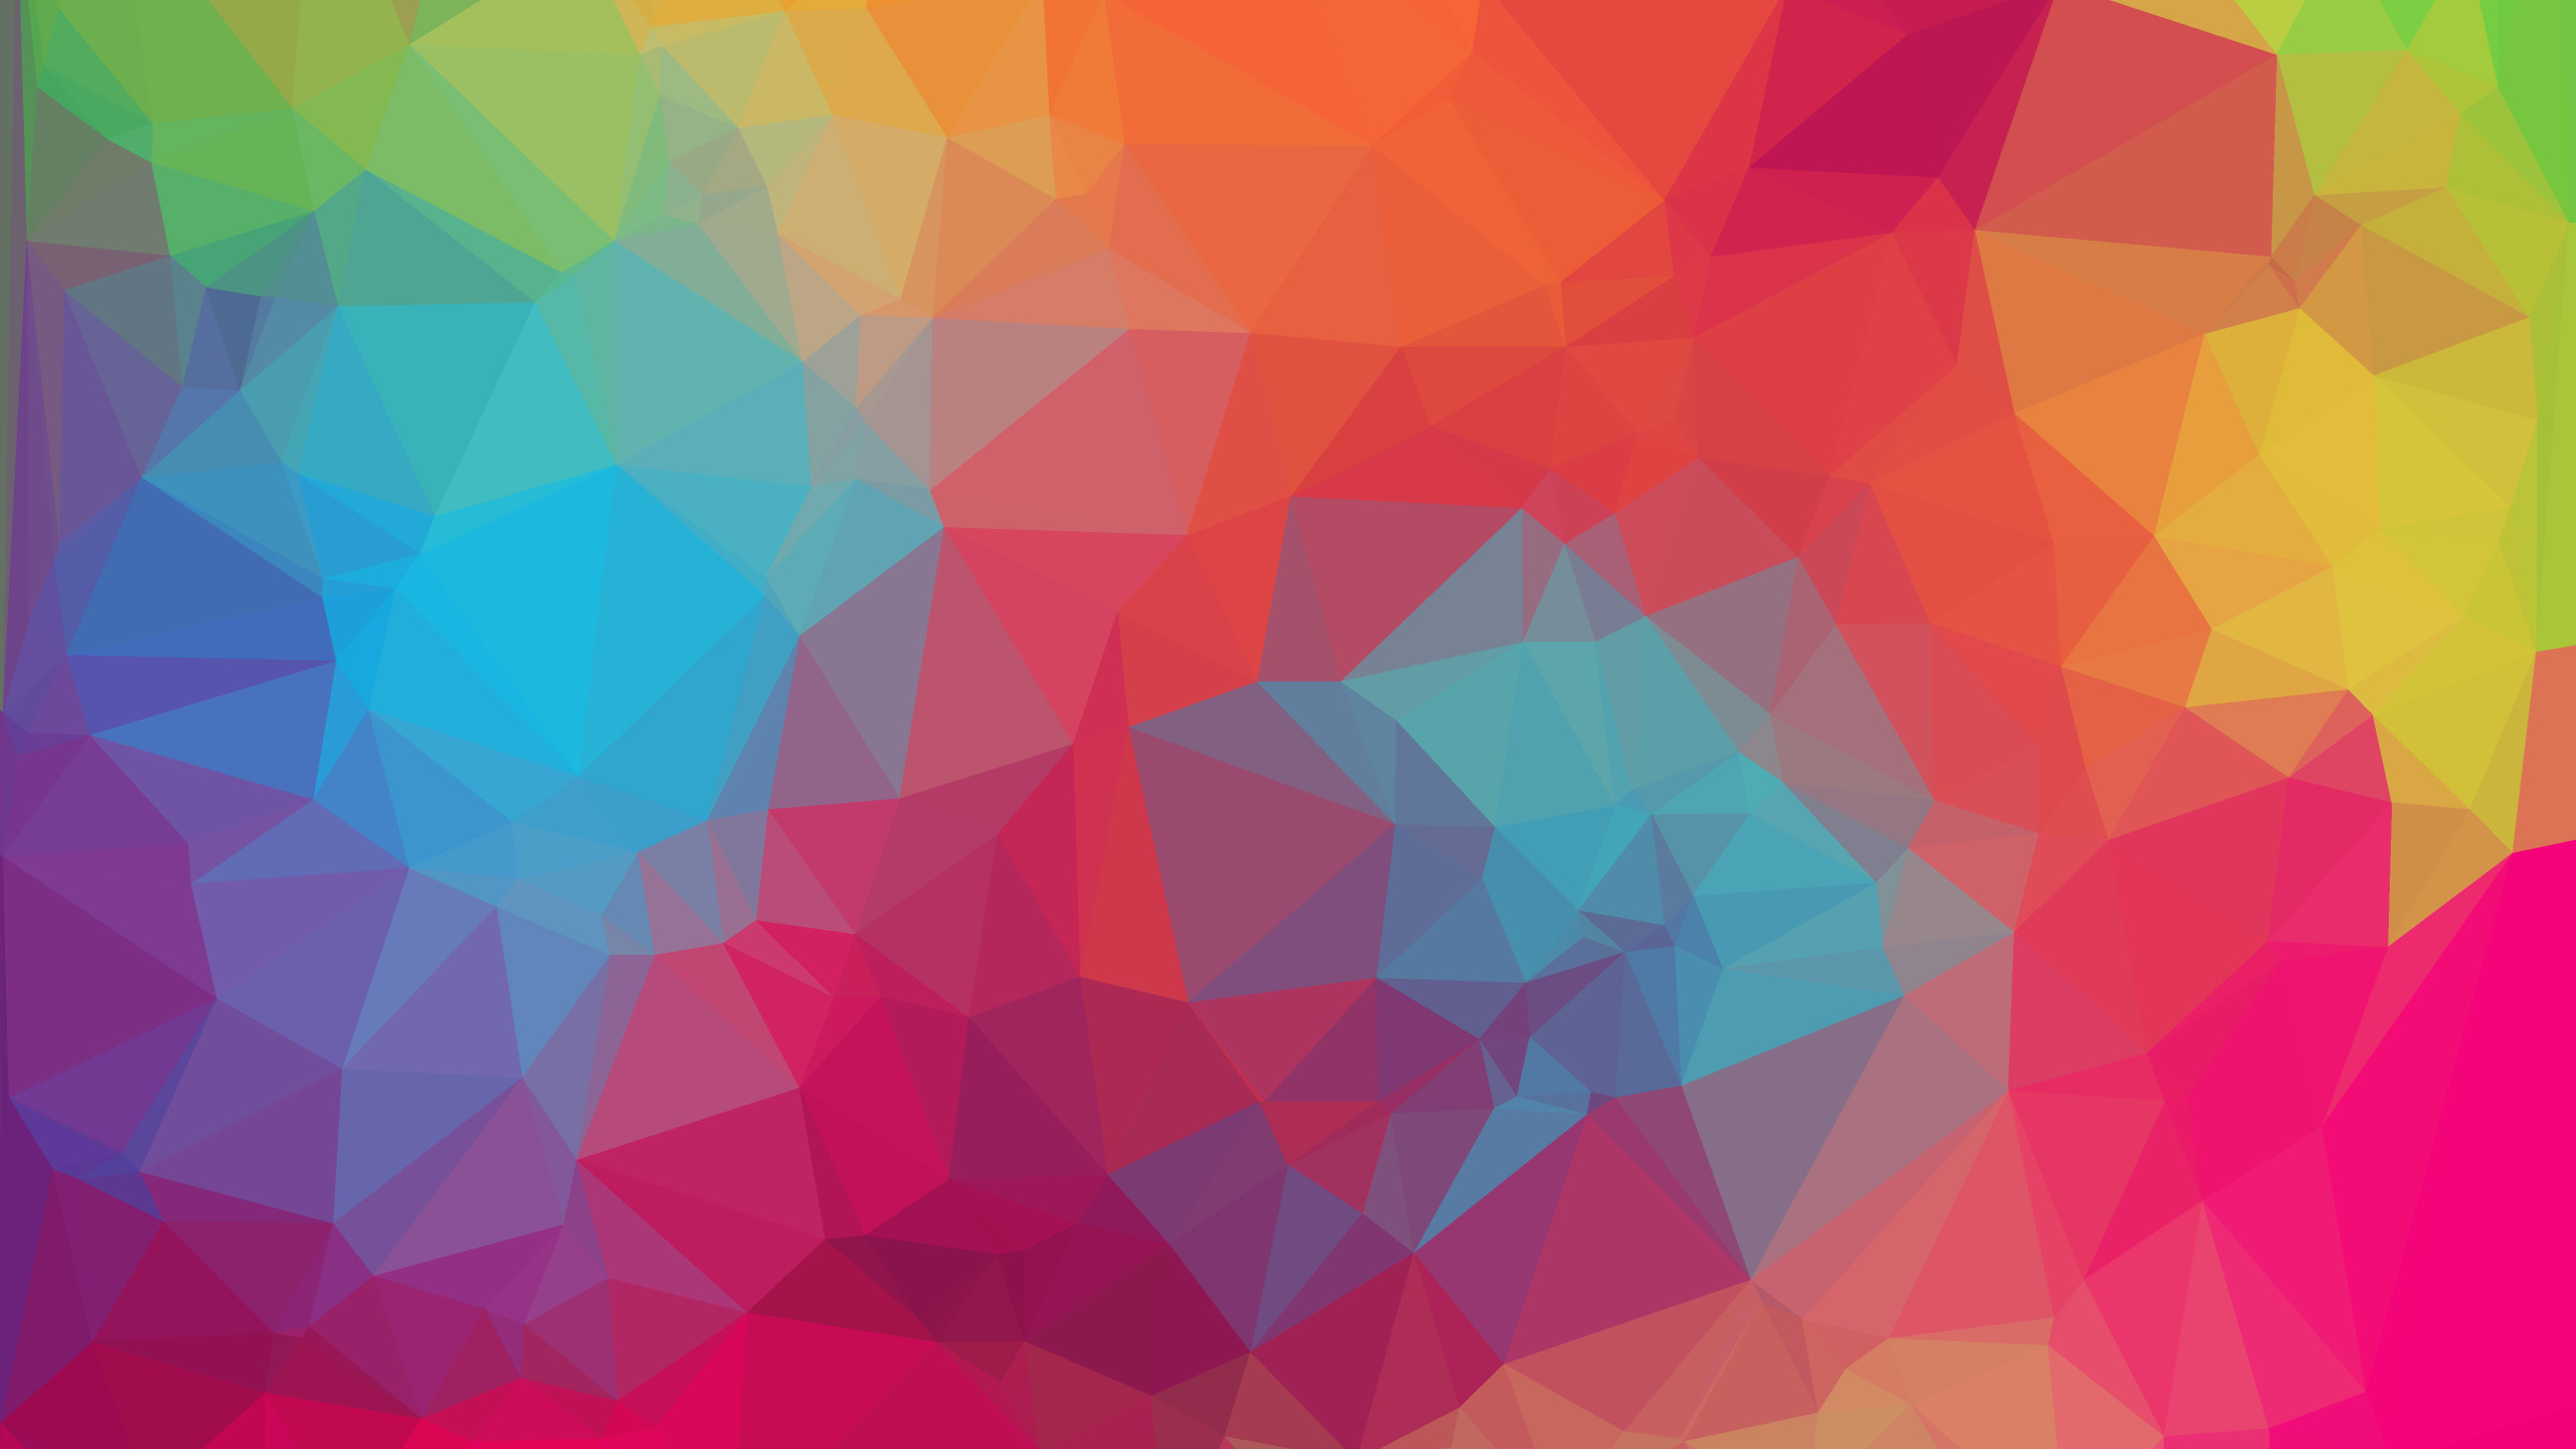 Res: 2600x1463, Geometry Colorful Polygon Bright Wallpaper